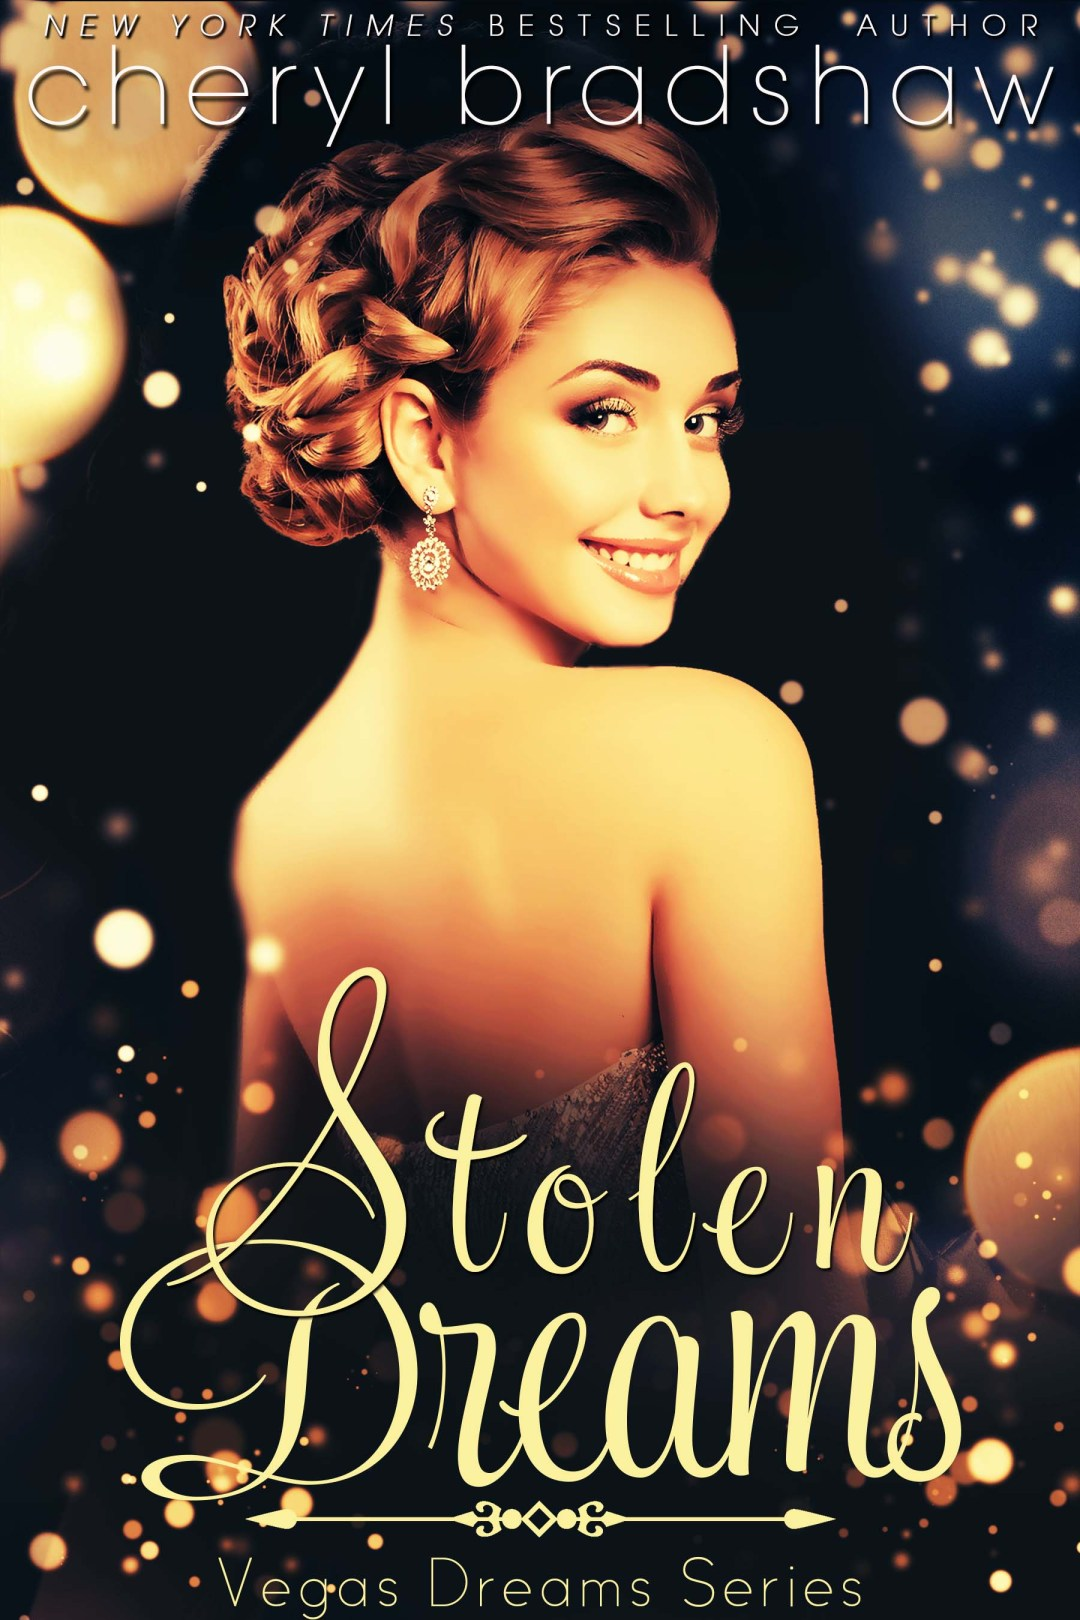 Stolen Dreams by Cheryl Bradshaw New York Times bestselling author